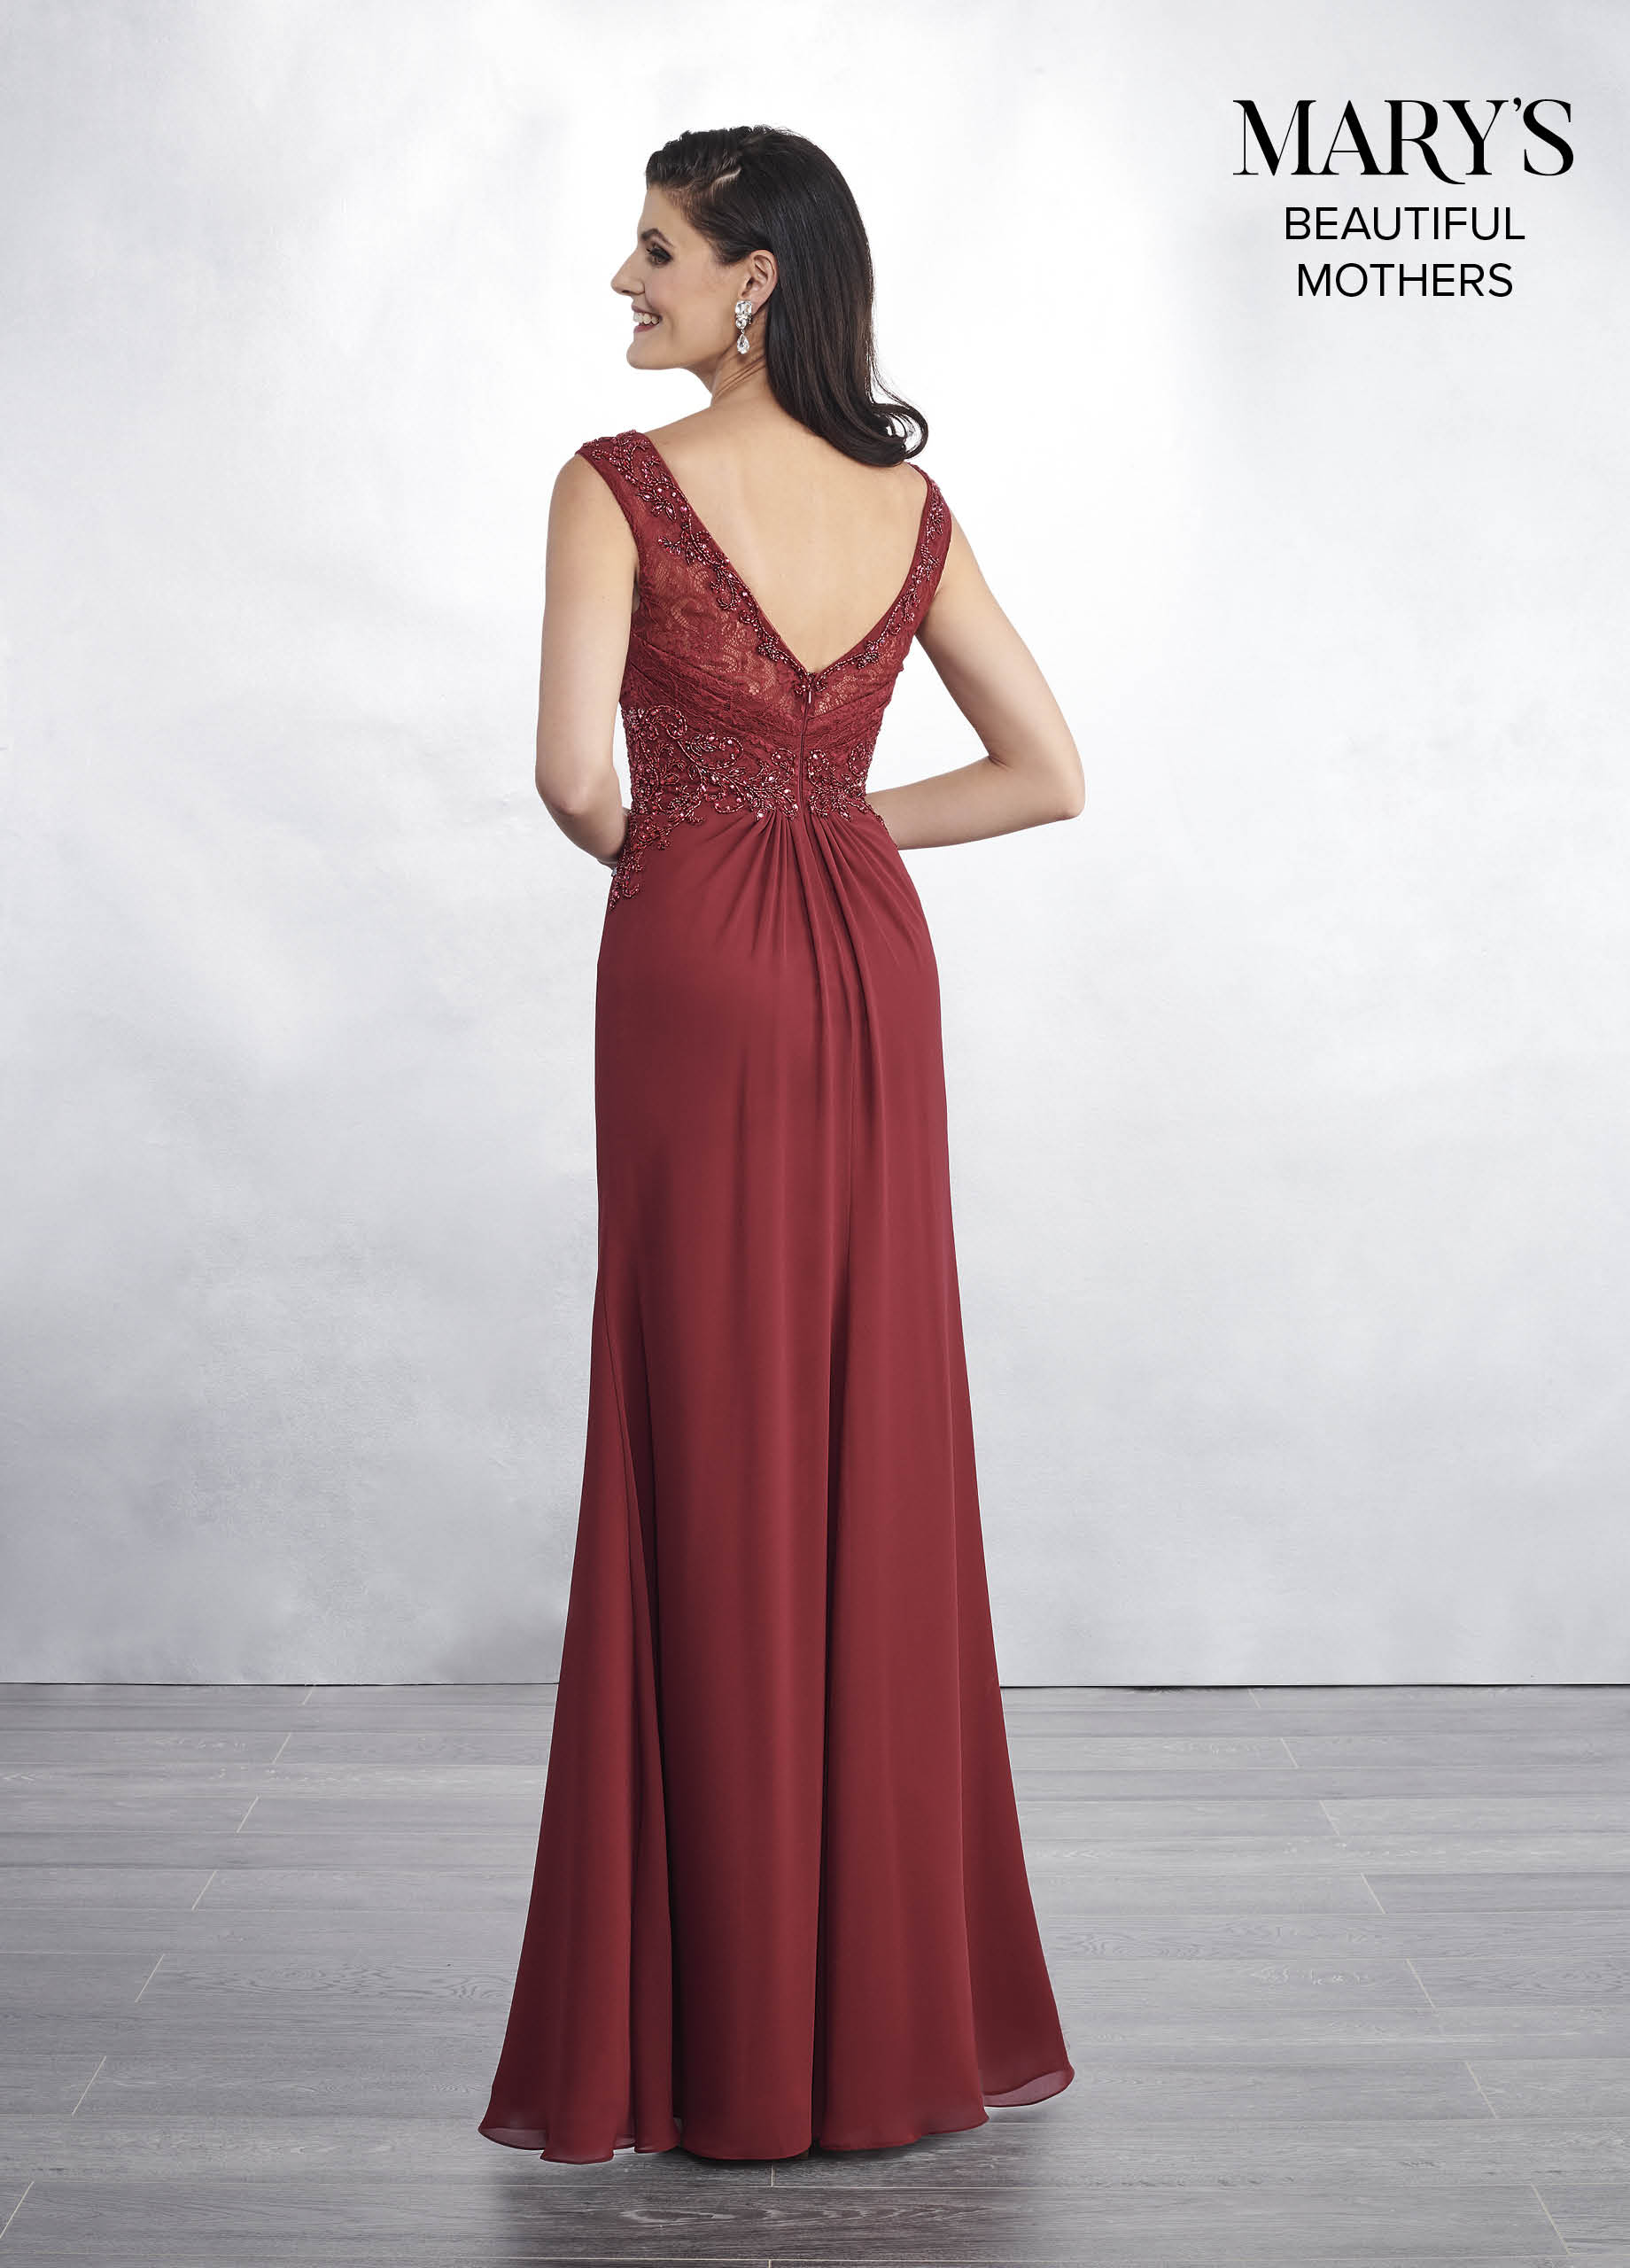 Mother Of The Bride Dresses | Beautiful Mothers | Style - MB8041